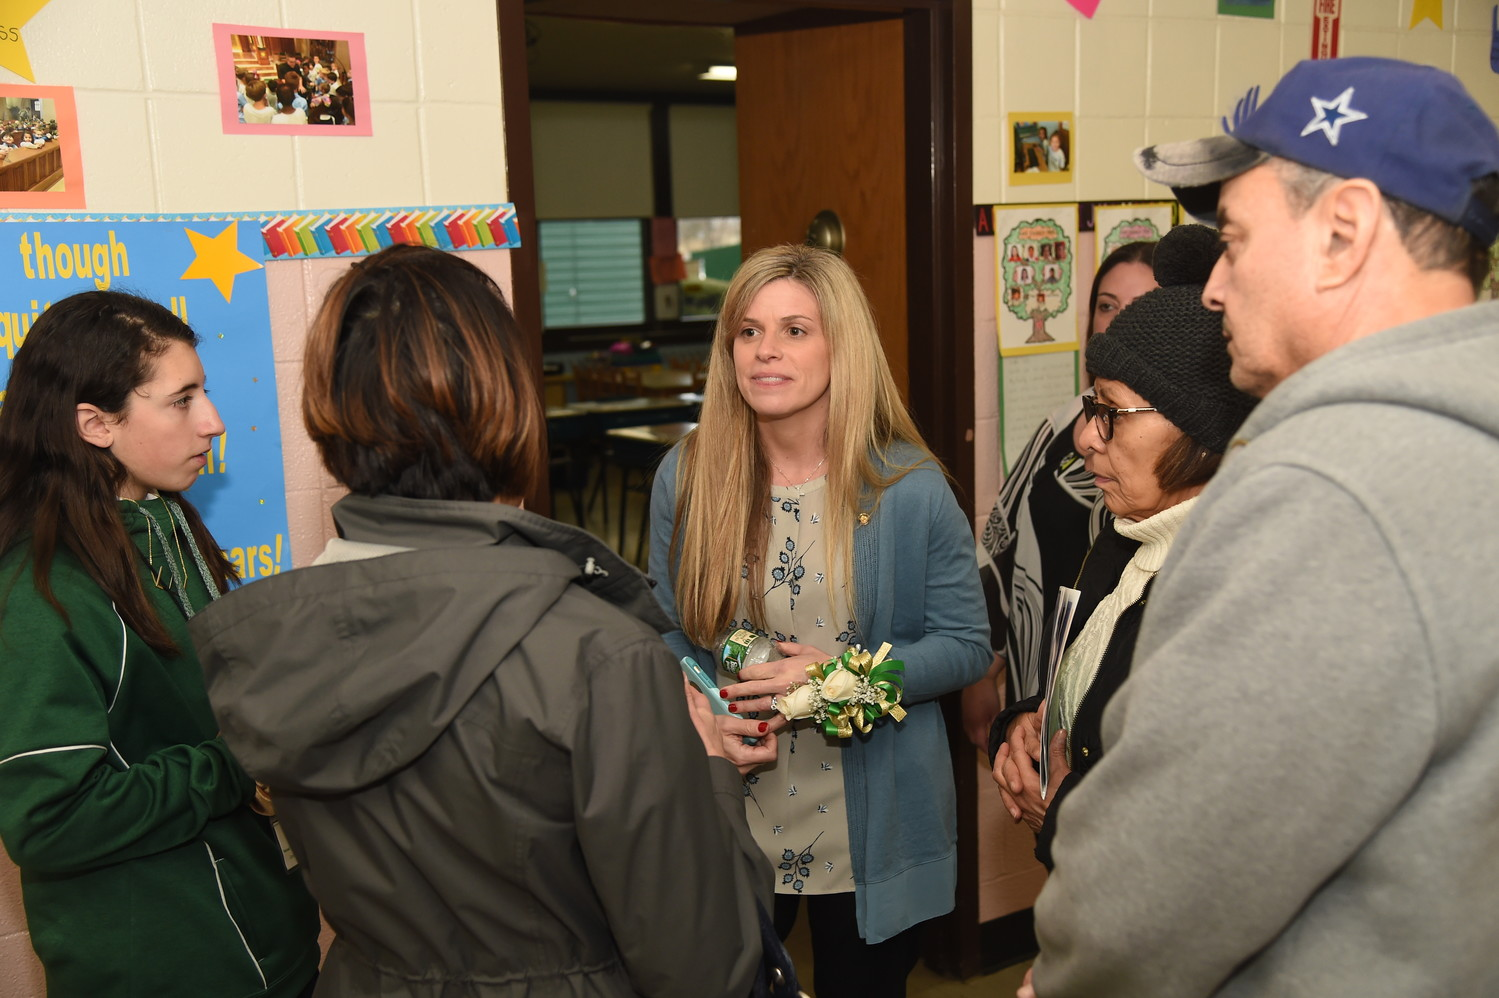 Guidance counselor Brooke Gorey conversed with parents.